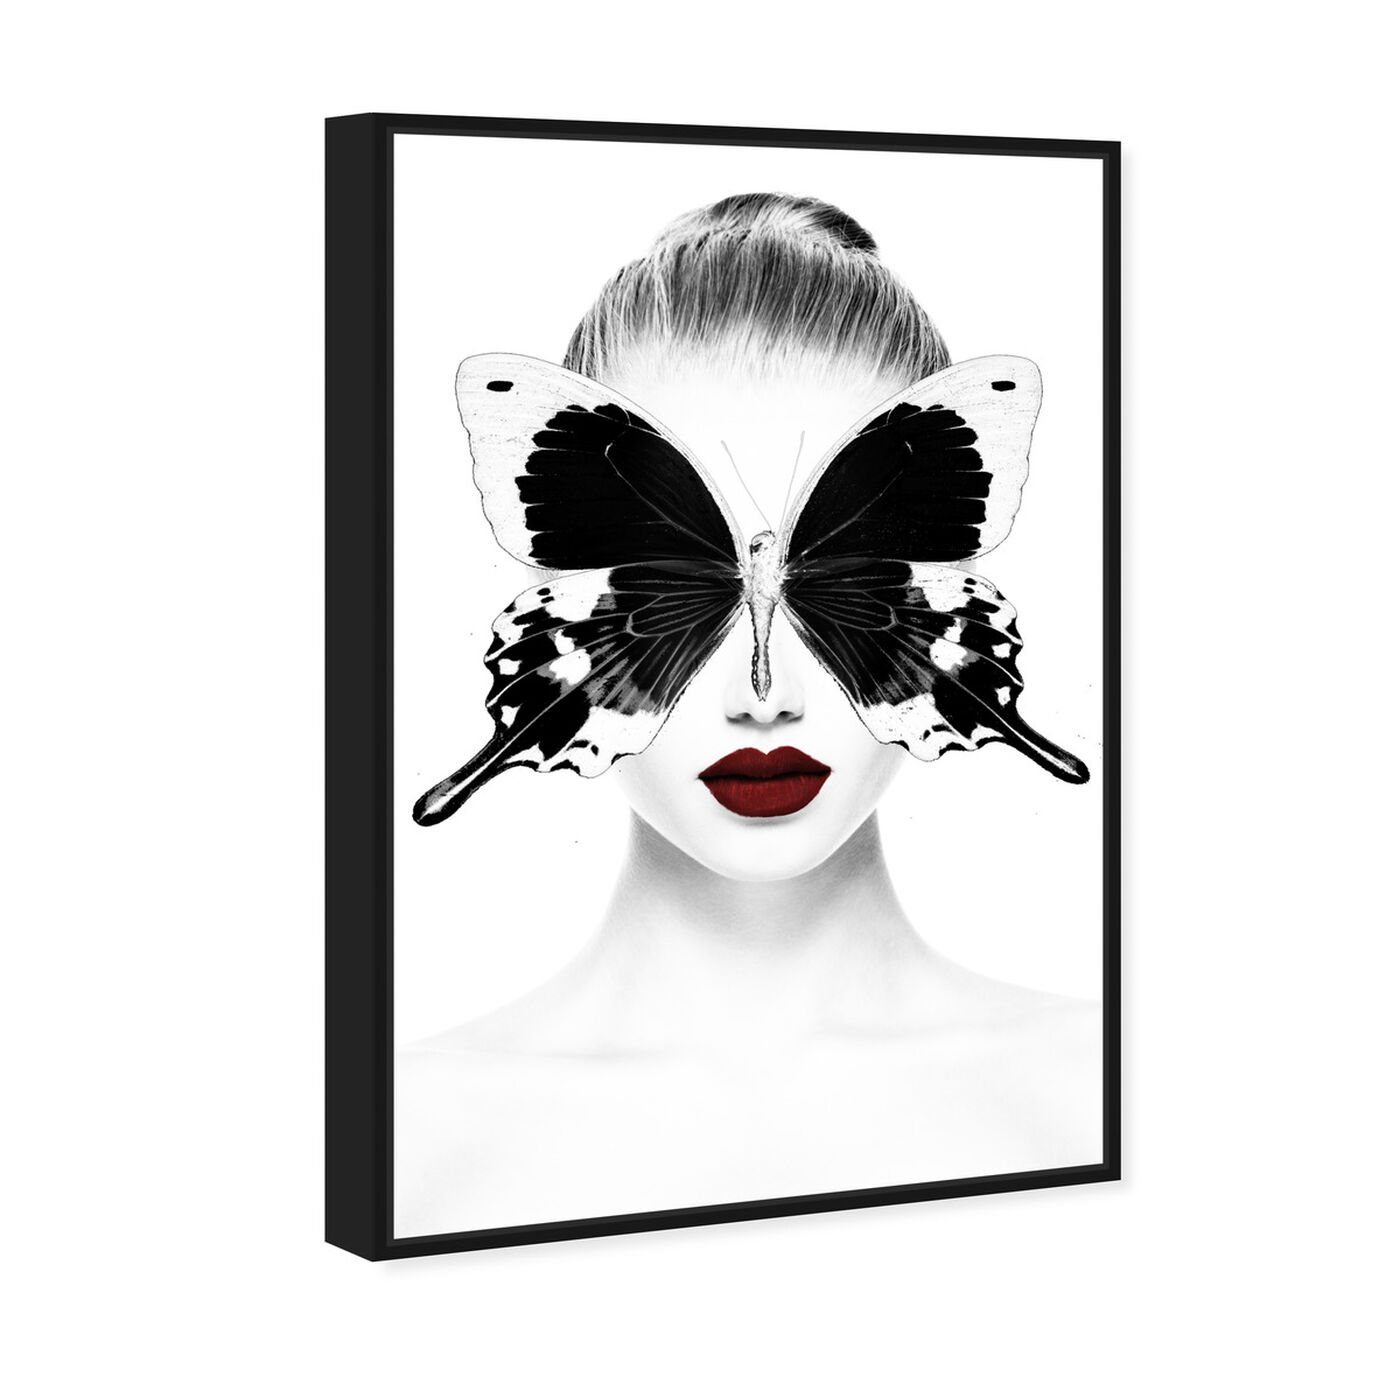 Angled view of Red Duchess Toujours featuring fashion and glam and portraits art.